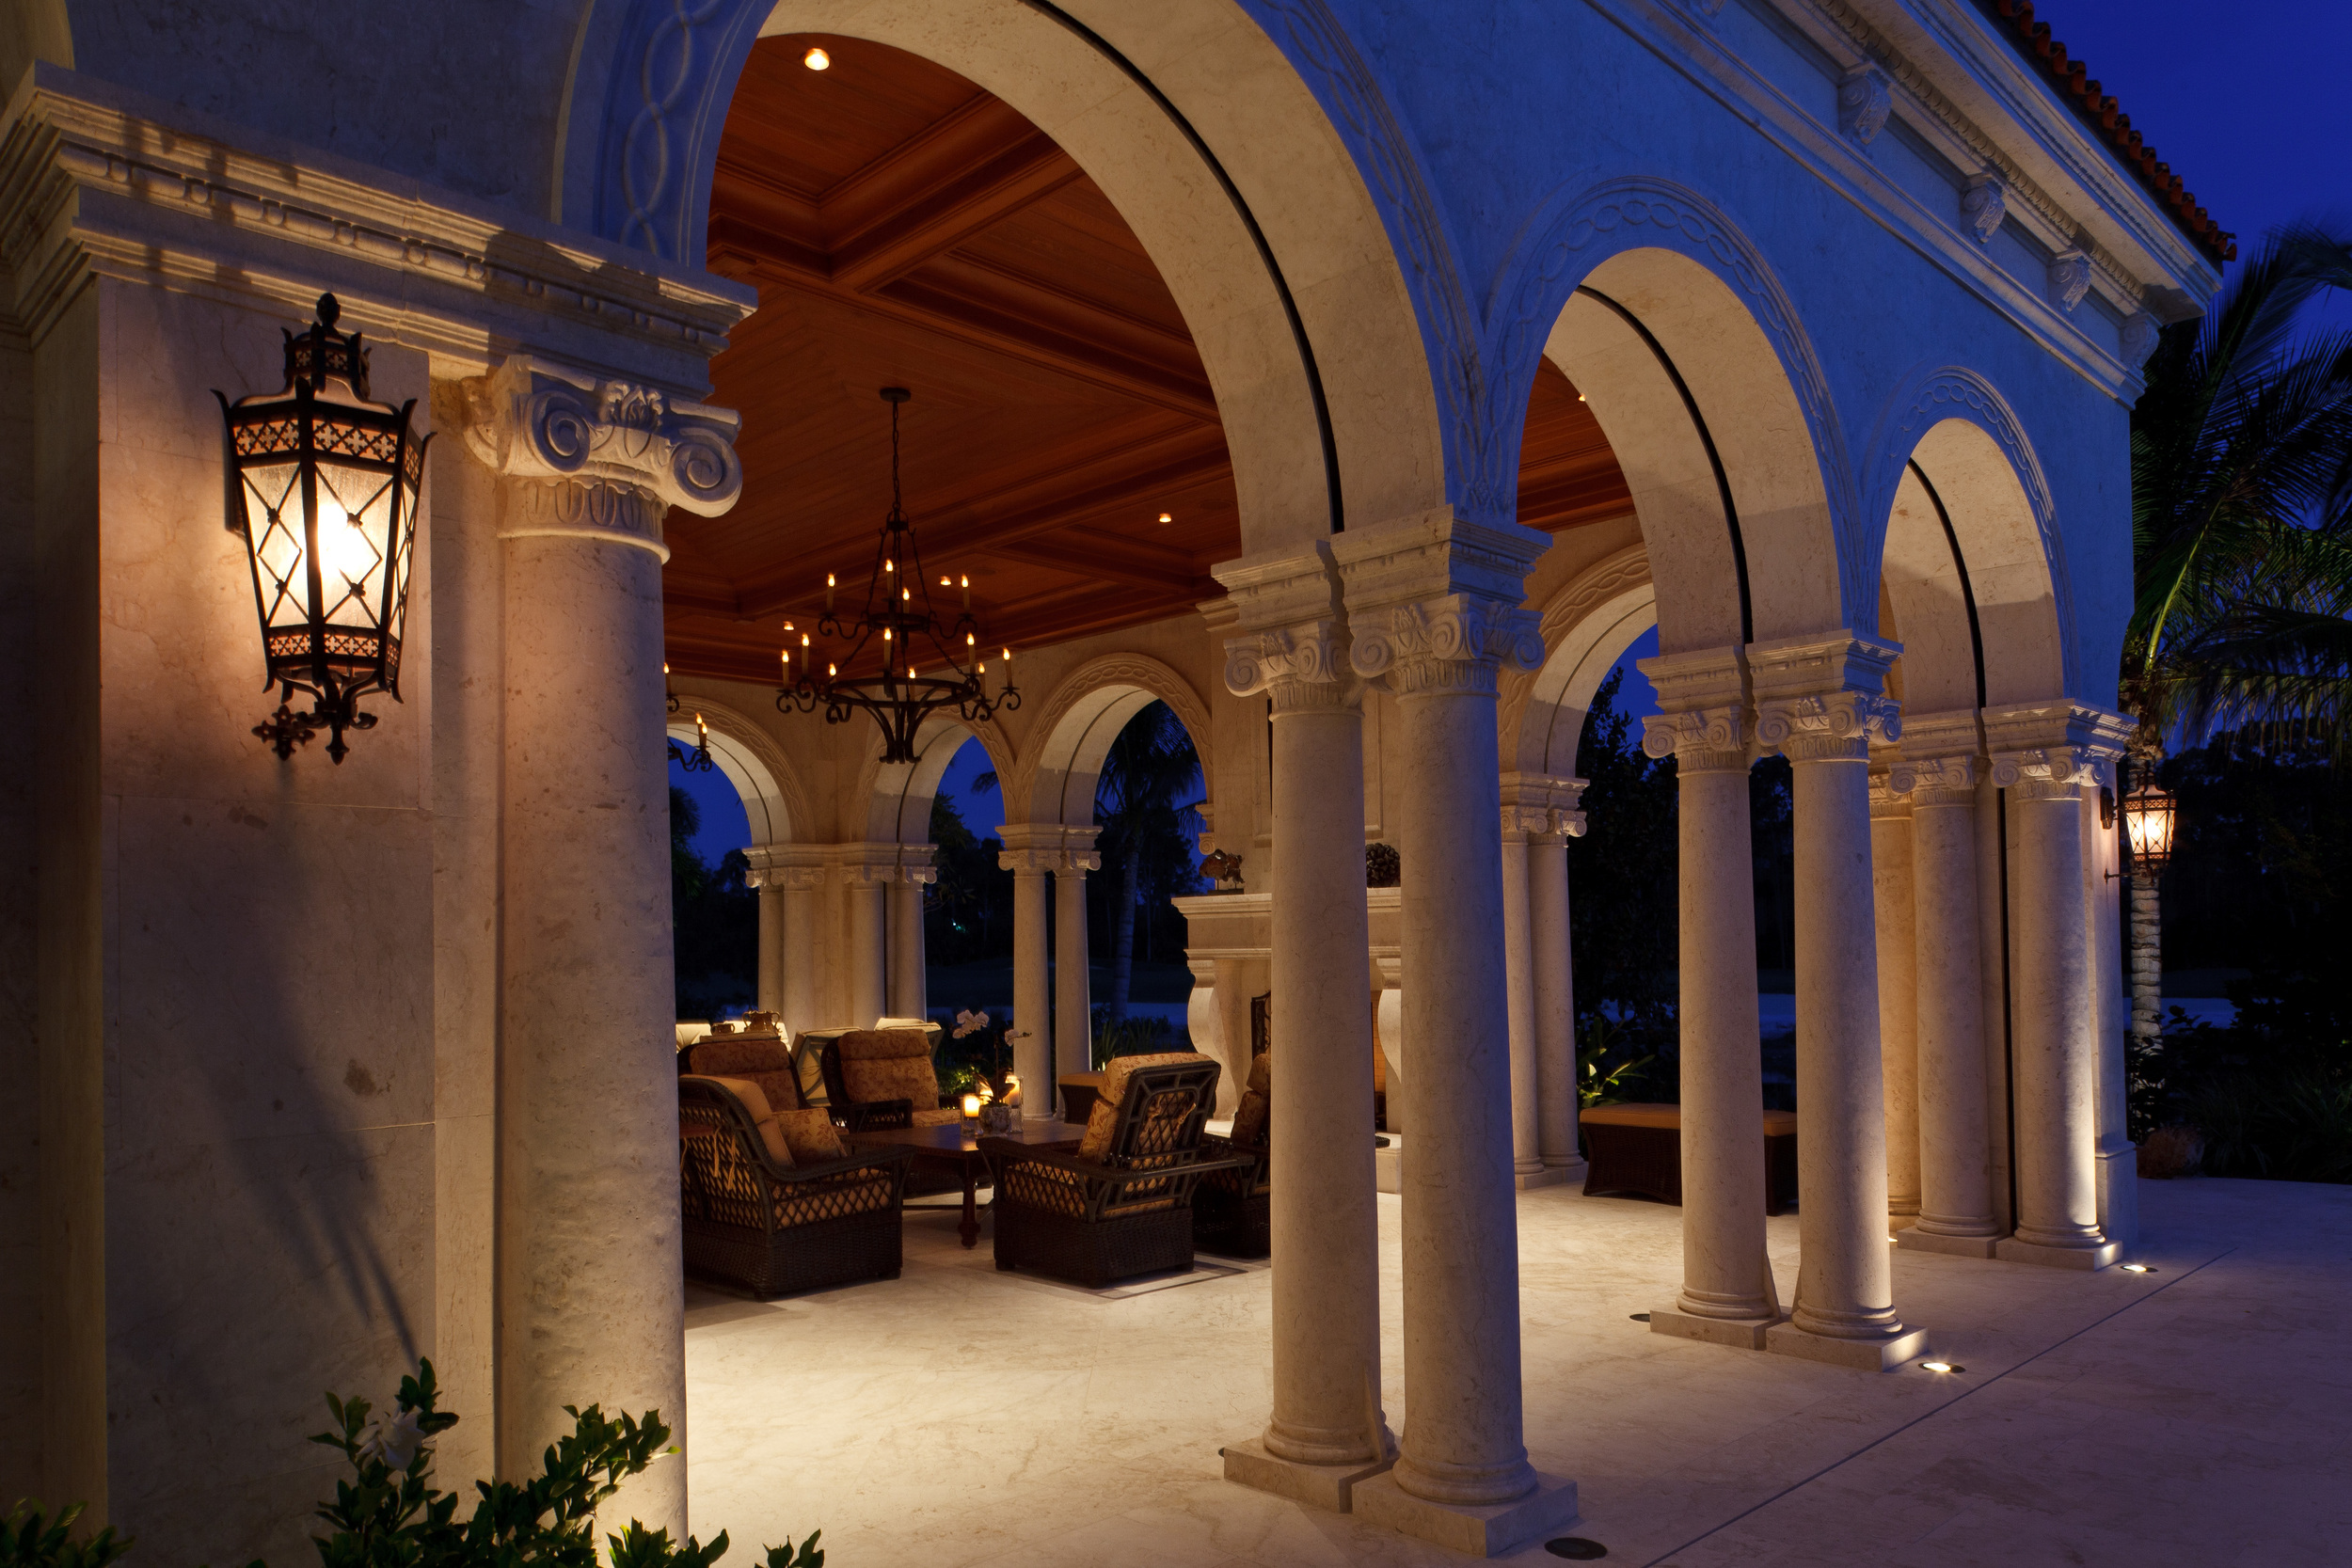 Interior and exterior details were coordinated to create a consistent and elegant Spanish Moorish character. The columns and ceiling of this welcoming lanai are typical of the exhaustive and inventive design detailing throughout the Florida home.